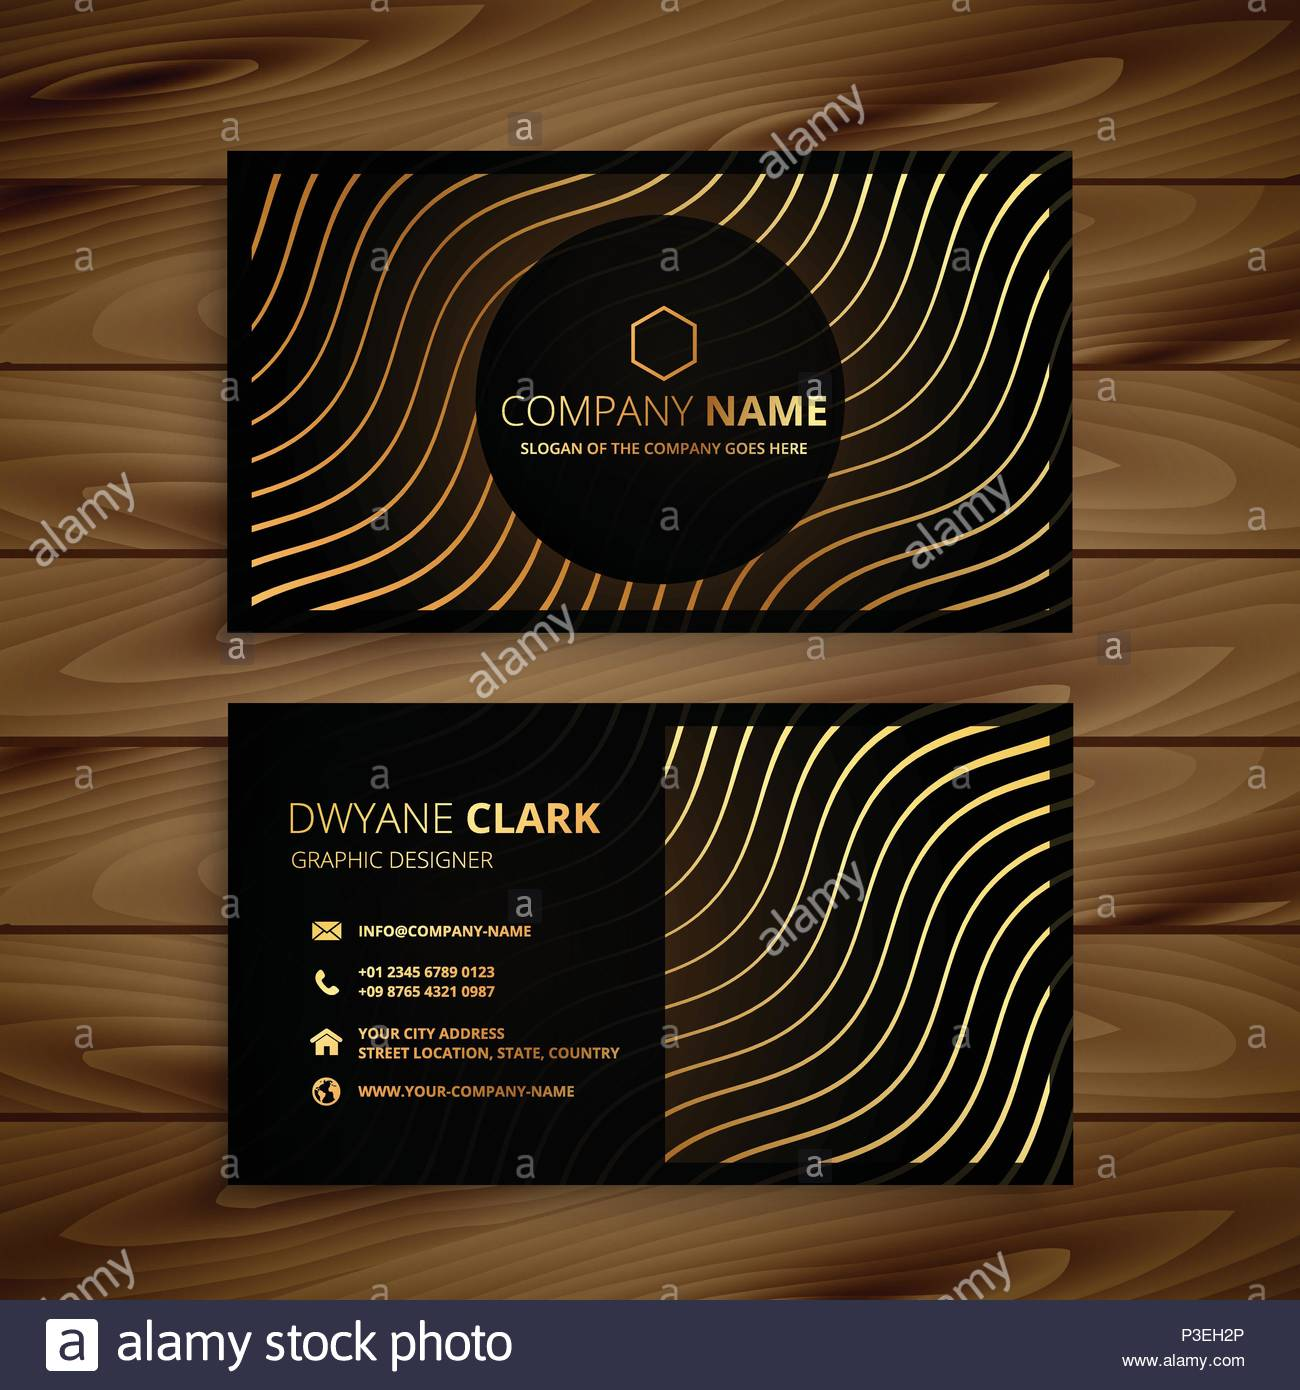 Golden premium business card template stock vector art golden premium business card template colourmoves